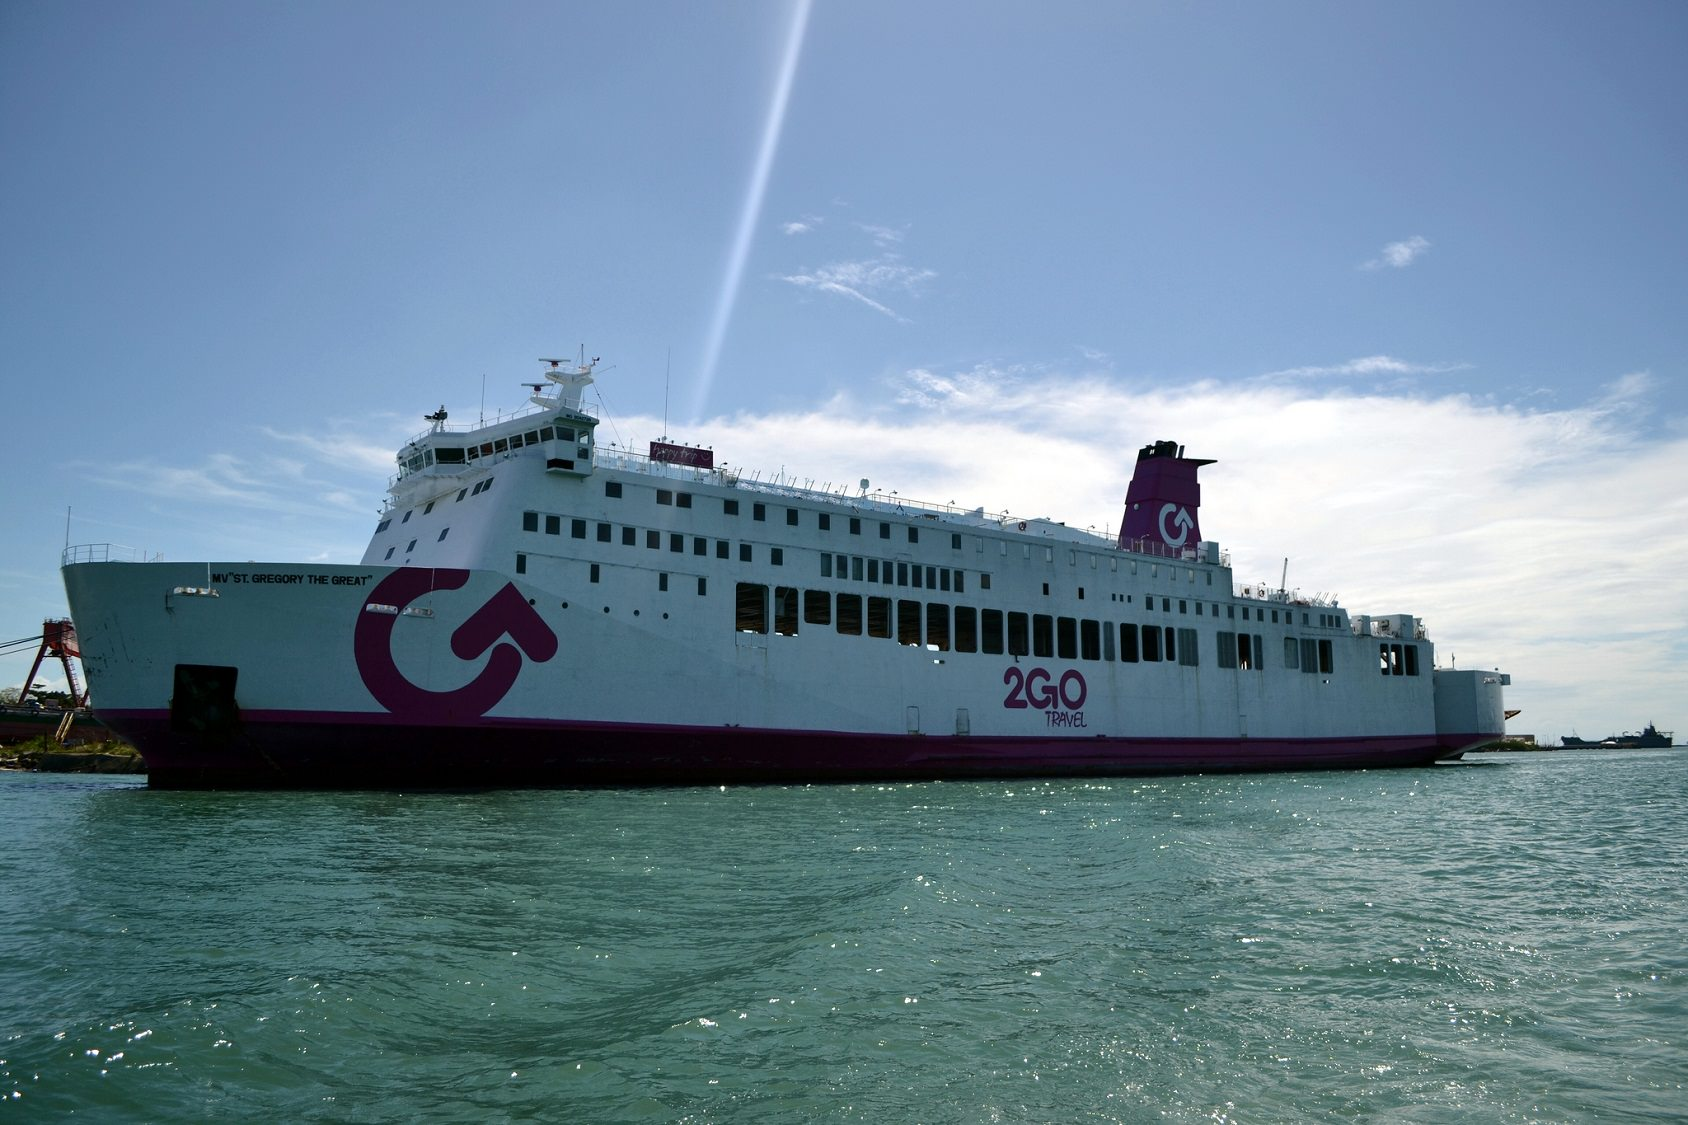 Ferry 2go travel, ferry tickets and ferry service between Manila, Puerto Princesa and Coron, Palawan, buy tickets 2go ferry to Palawan online